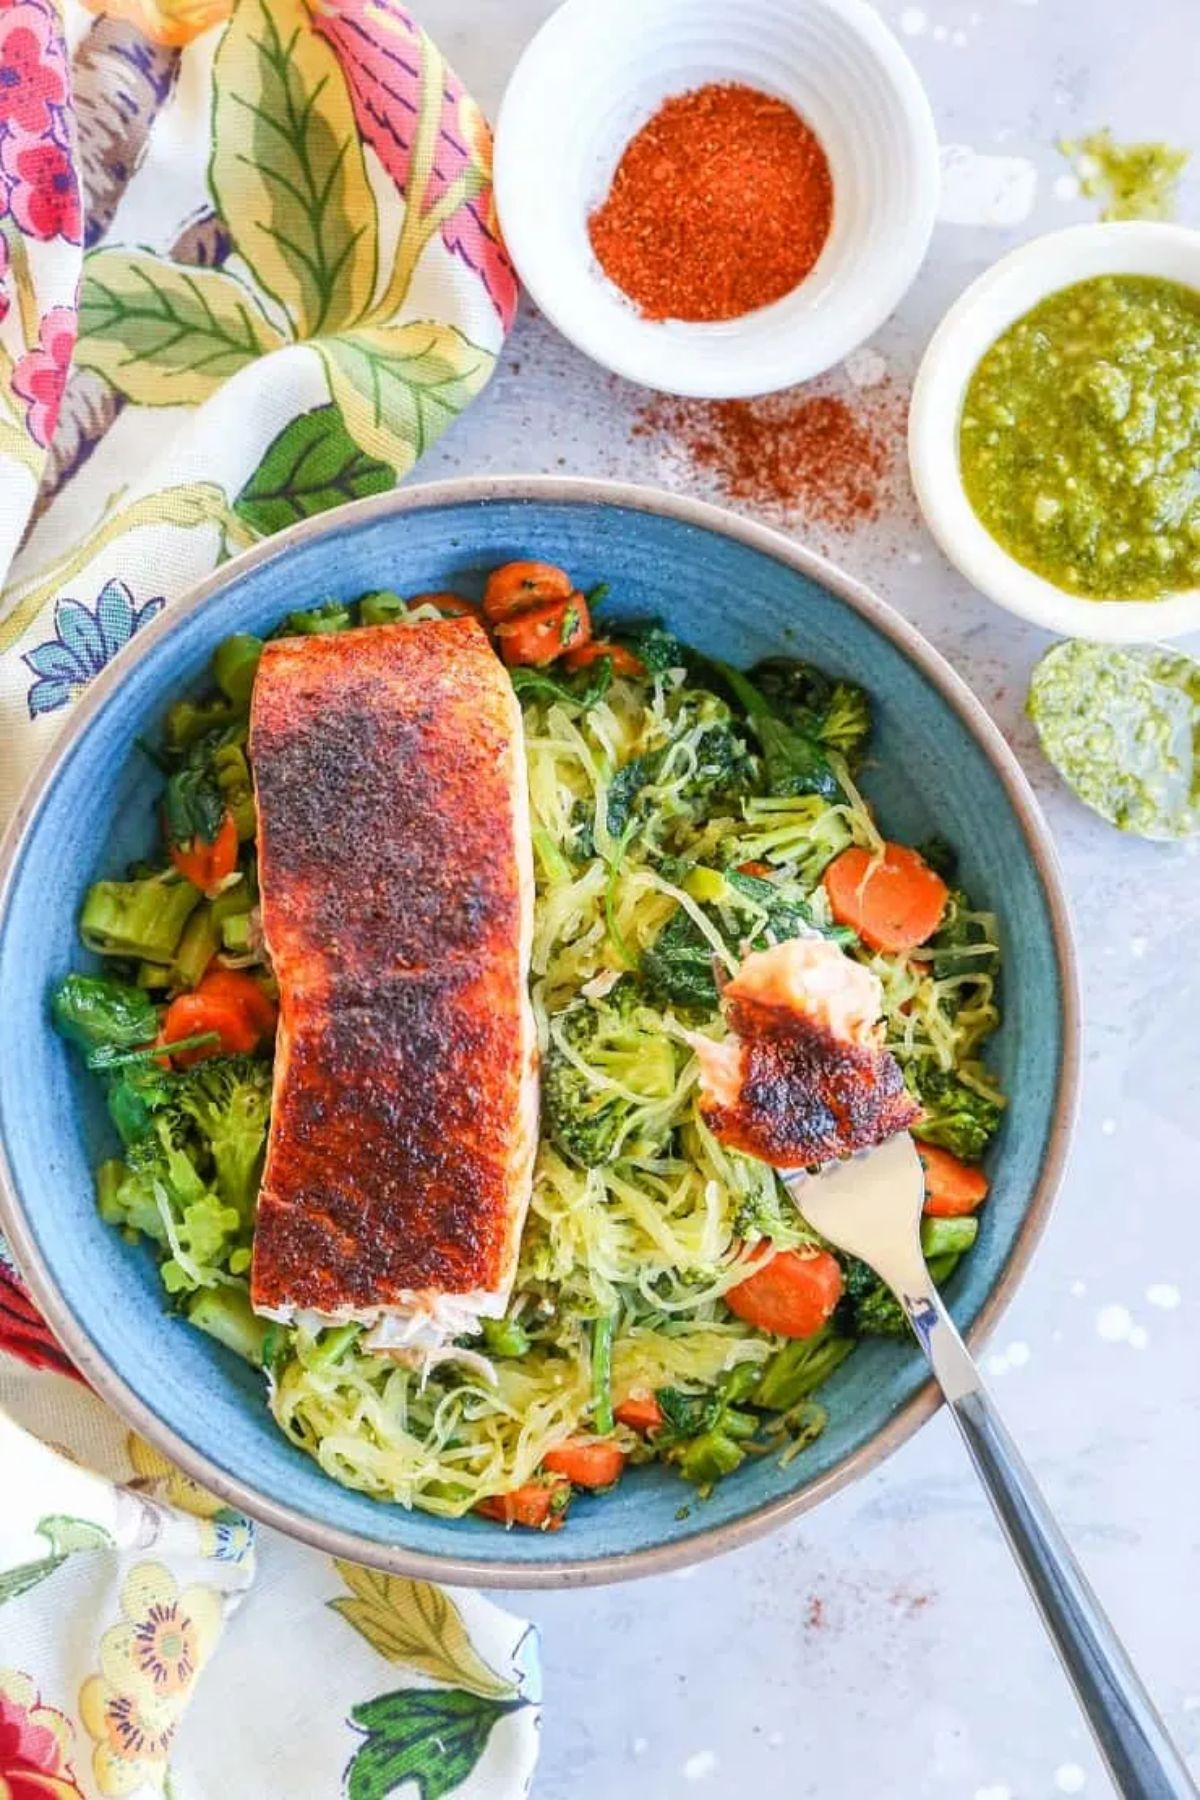 a blue bowl od spaghett squash noodles, with chopped vegetables and a fillet of salmon on top. 2 white bowls of spices and sauces are to the side